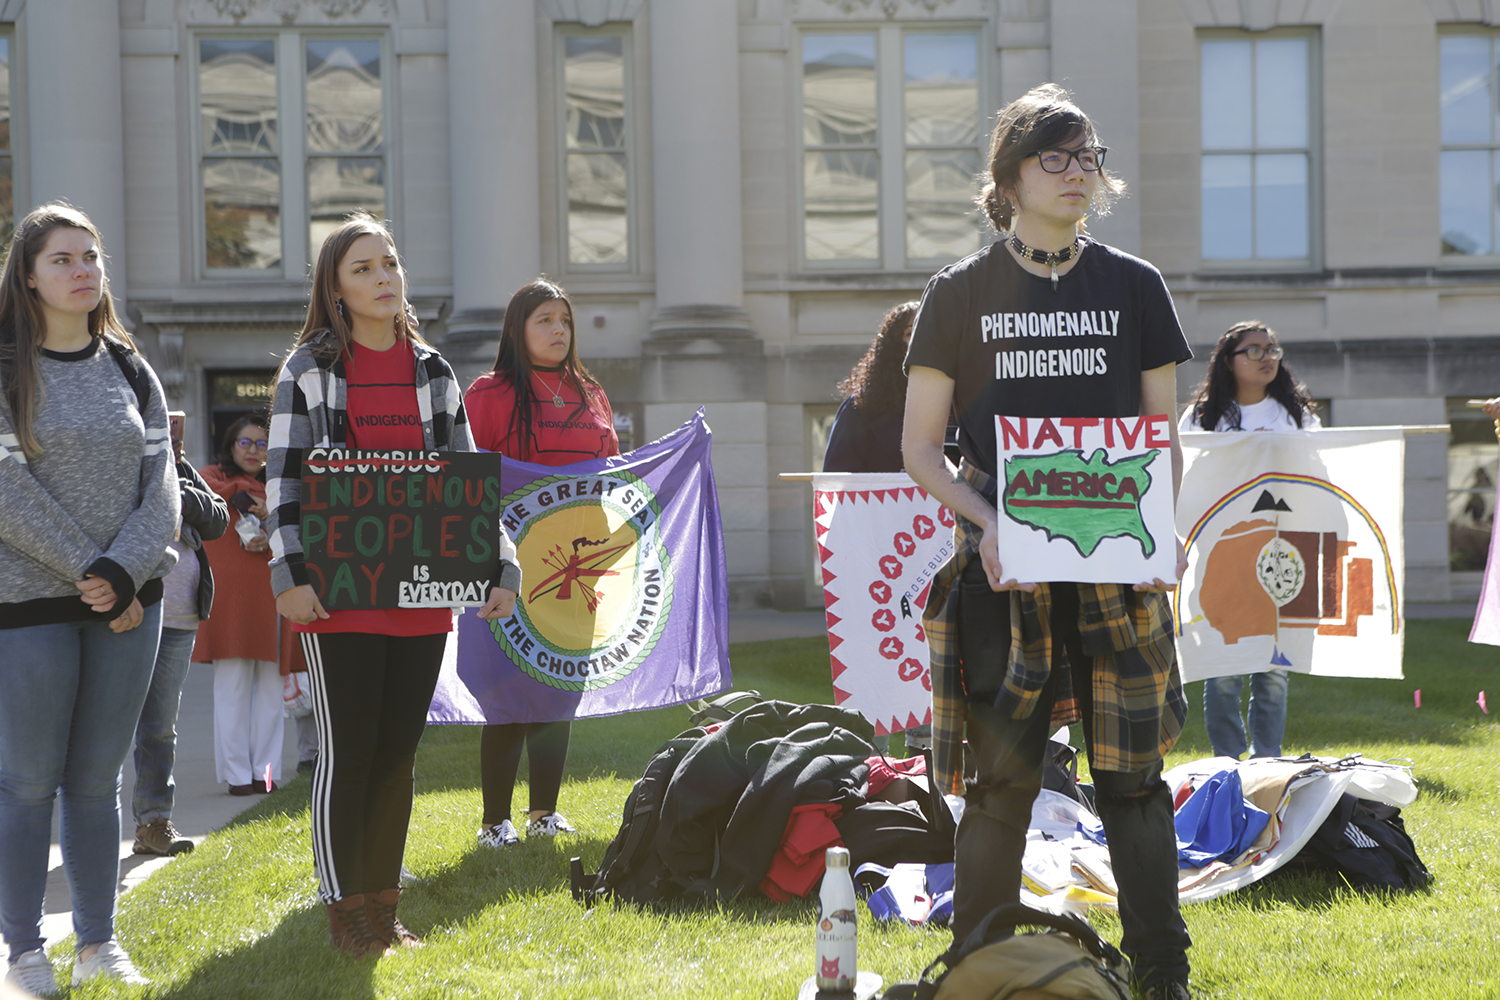 Rally attendees hold signs during the decolonization rally on the Pentacrest on Monday, Oct. 15, 2019. The rally featured speakers and music.